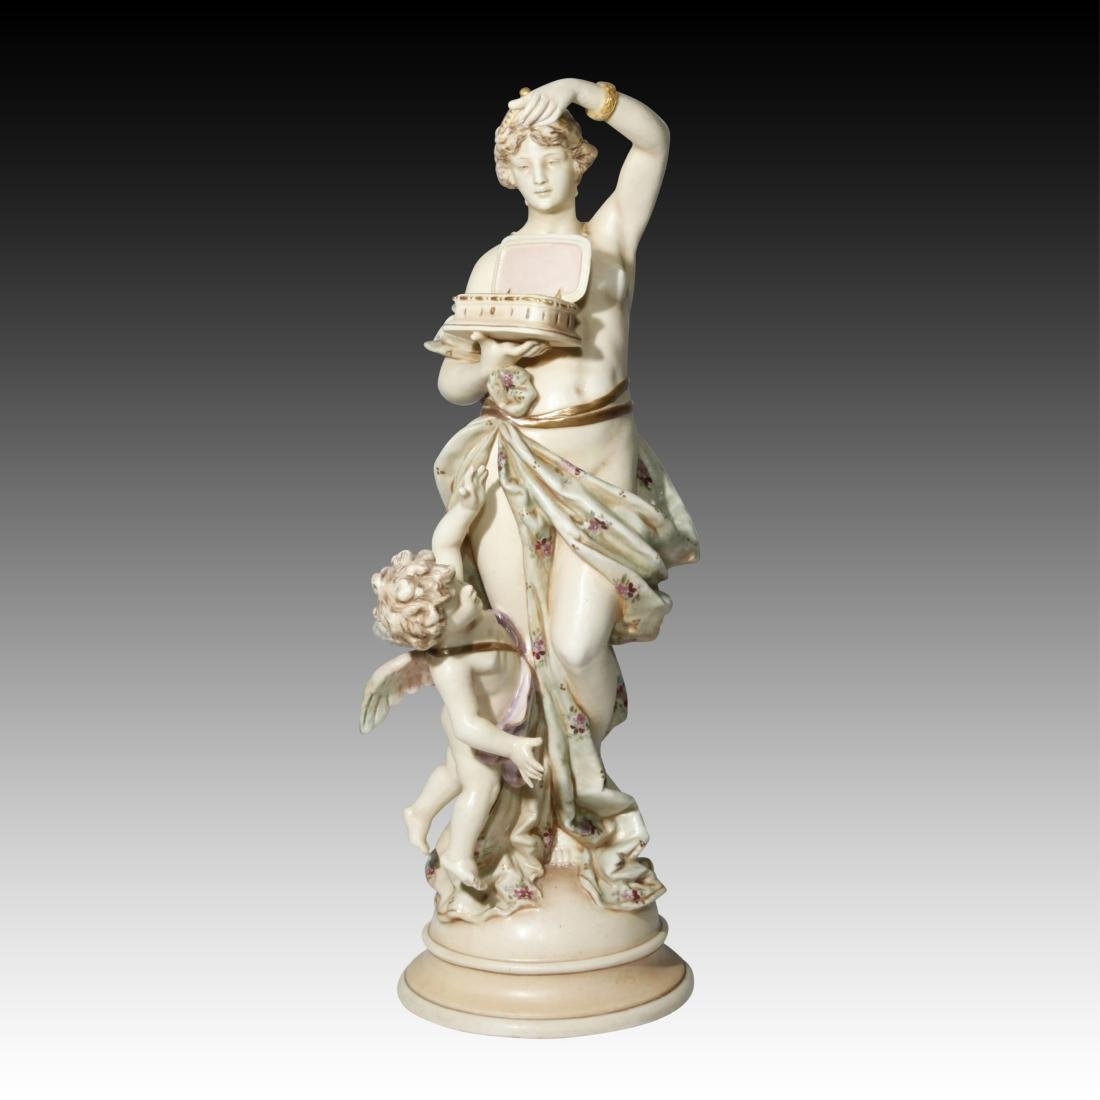 Wein Nude Goddess Figurine with Cherub